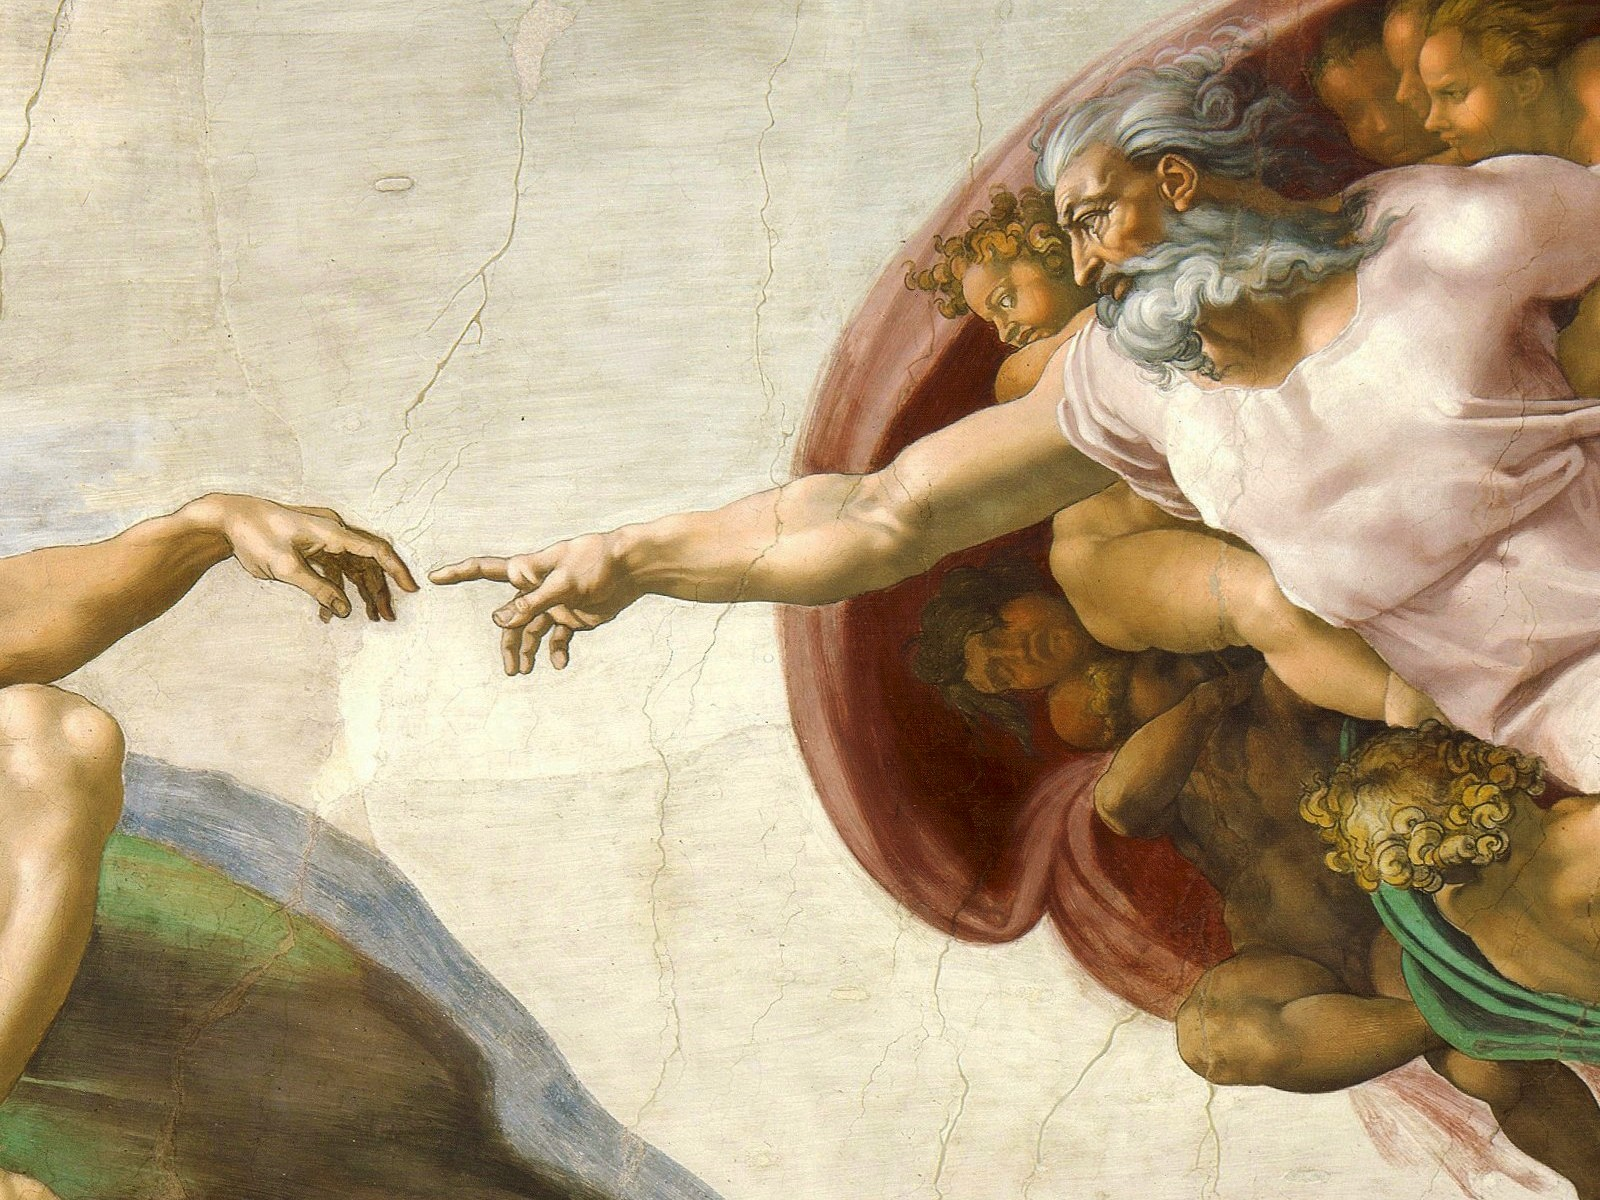 michelangelo - Creation of Adam - 1510.jpg